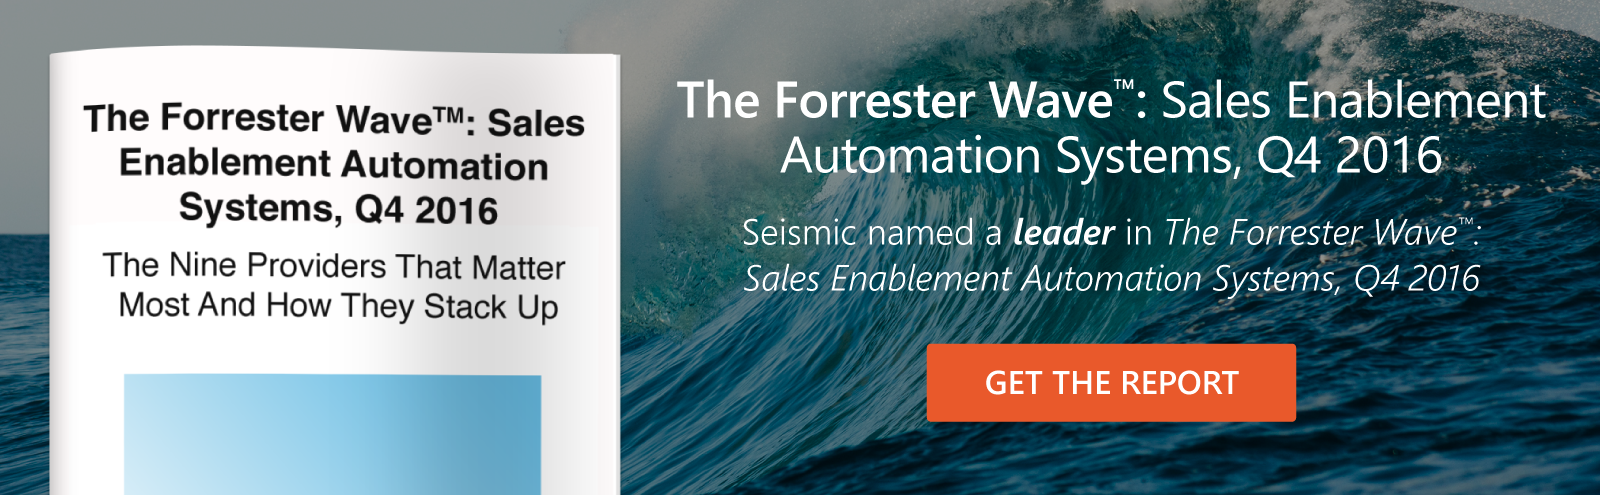 Forrester Wave 2016: Sales Enablement Automation Systems